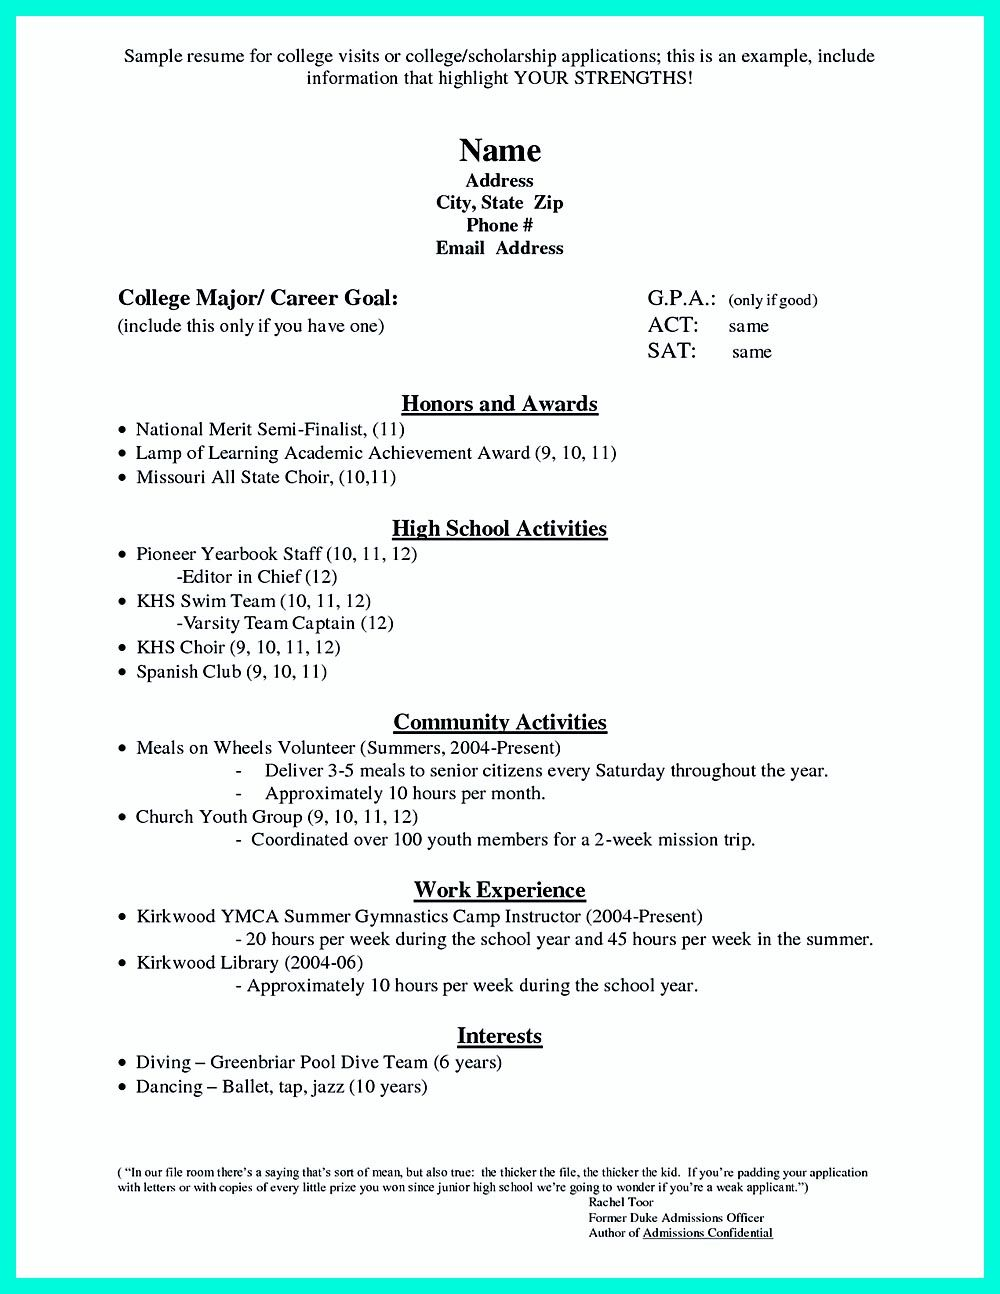 Ymca Volunteer Sample Resume Resignation Format Word Hedge Fund College  Graduate Needed You Think Admission Cover Letter With Work Experiences Also  ...  College Application Resume Sample